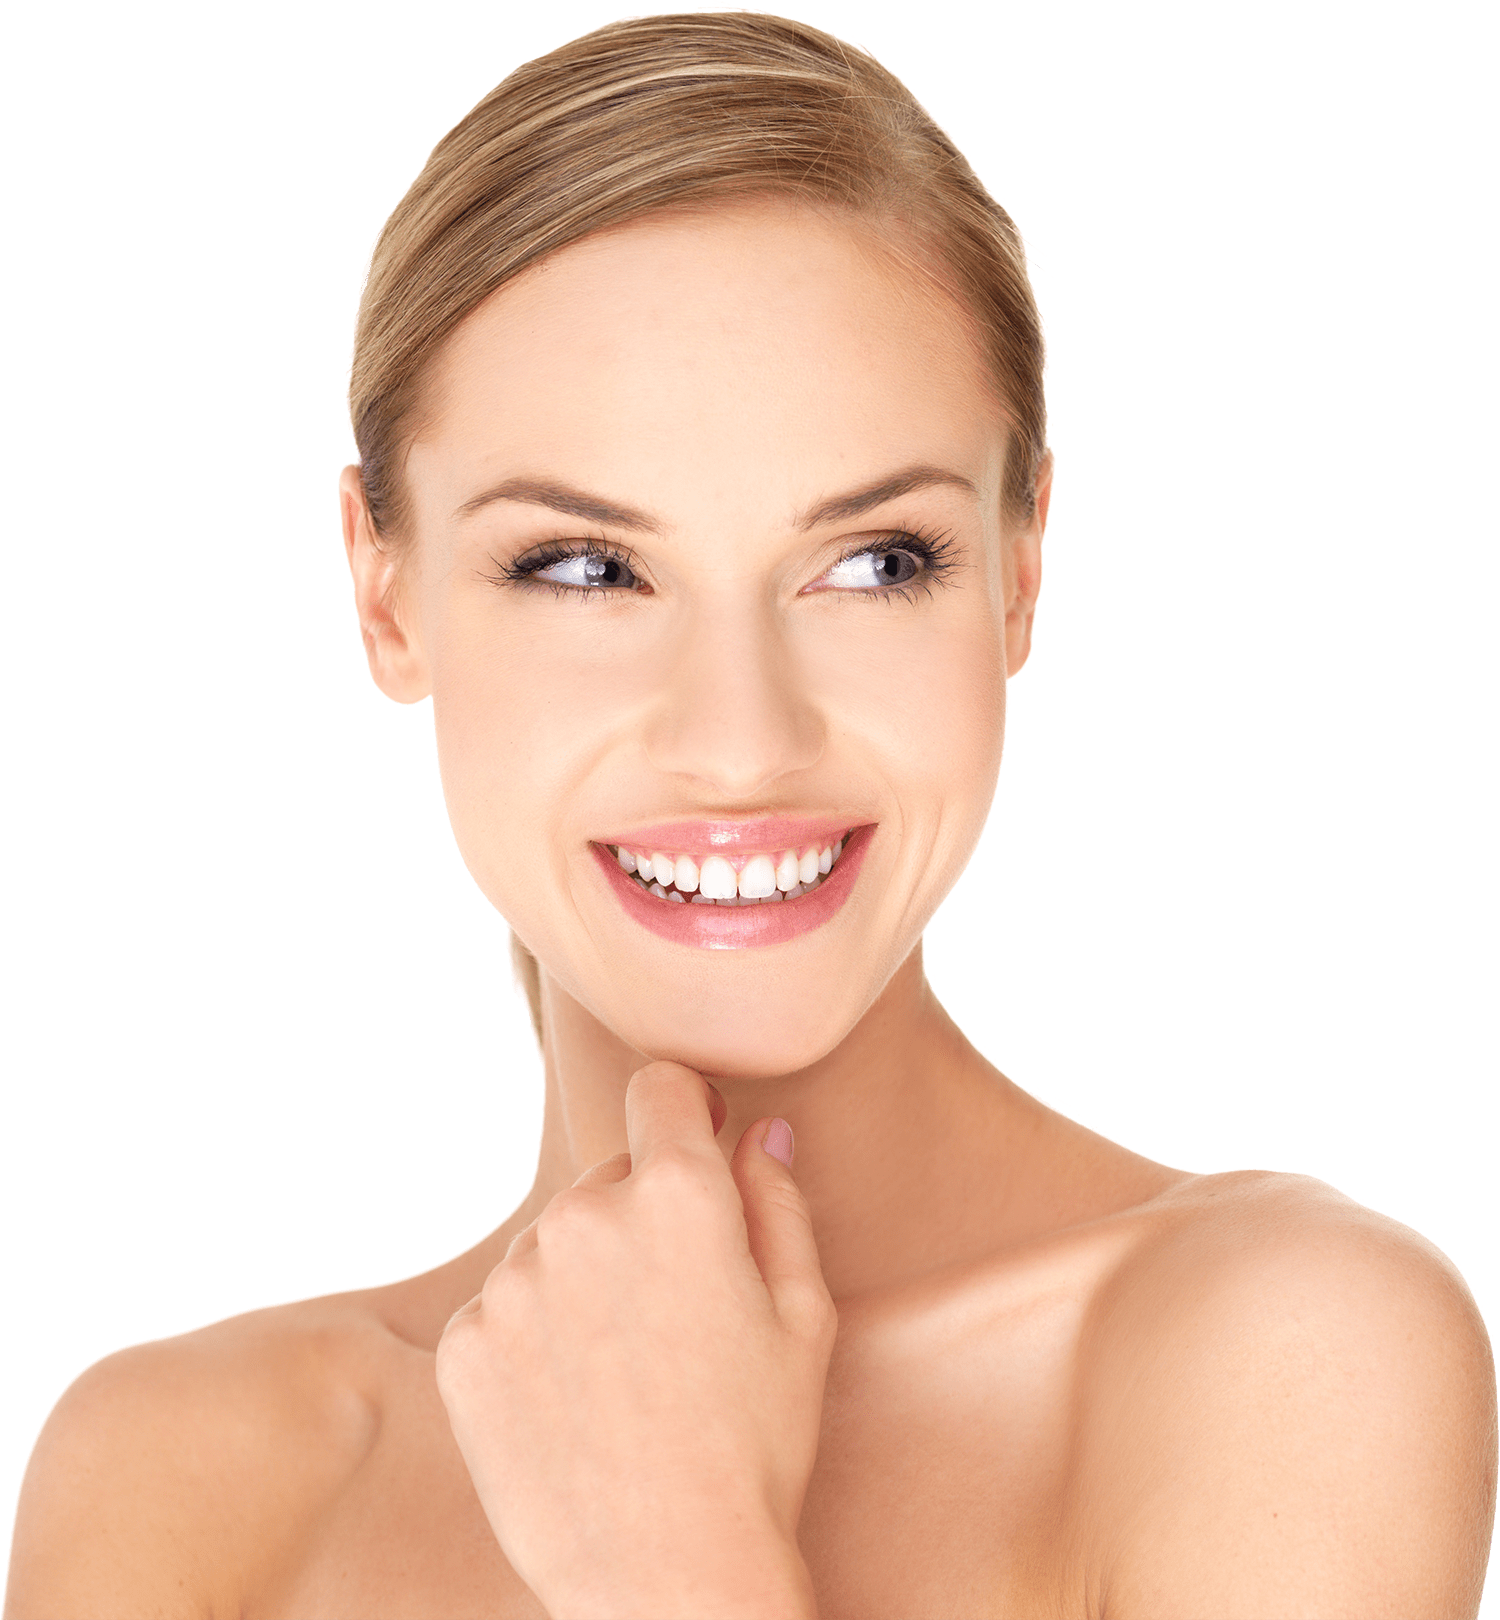 Skin clipart skin care specialist. Meridian plastic surgery you